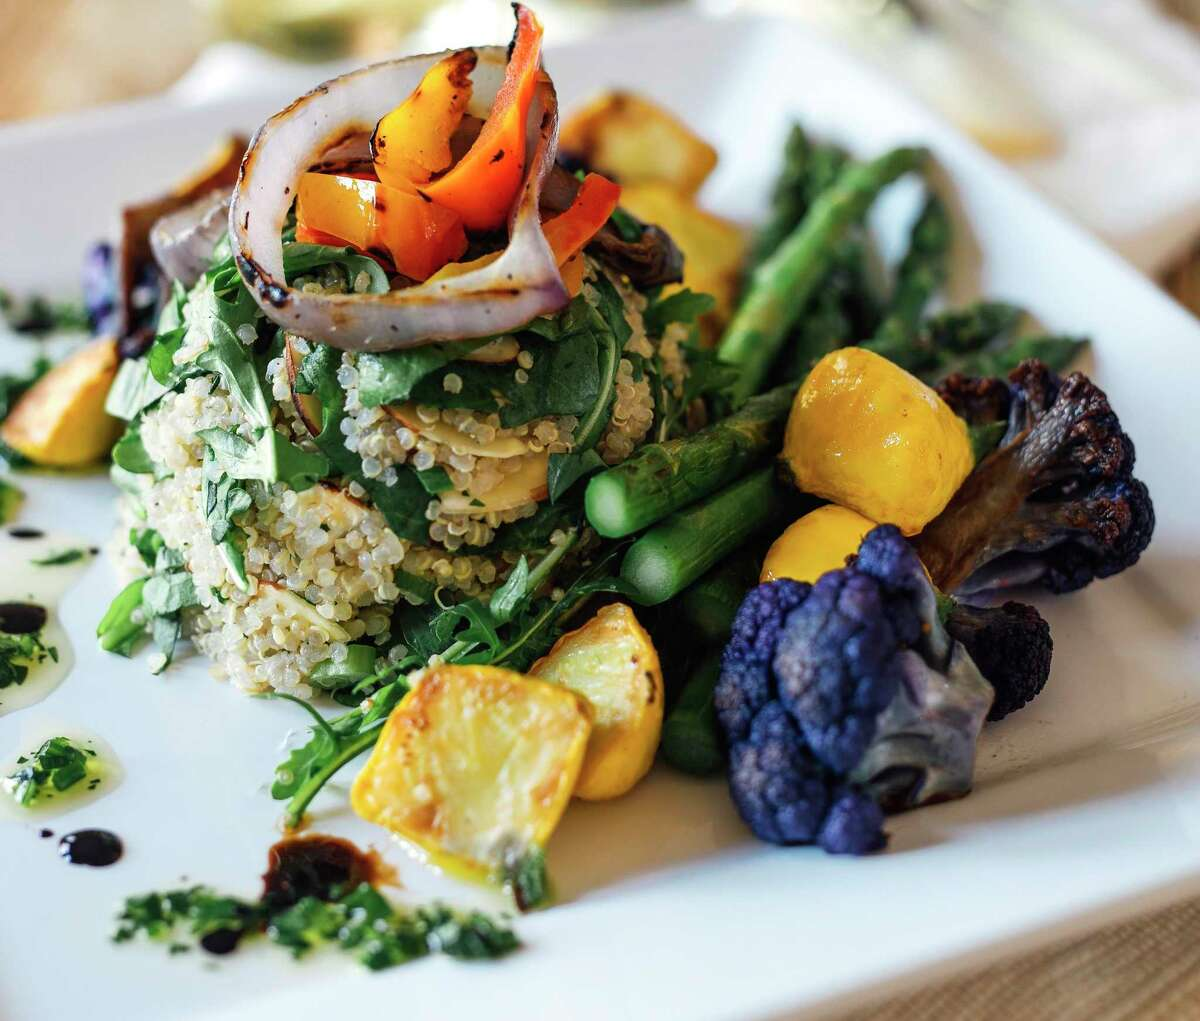 A salad of warm quinoa, kale, toasted almonds, roasted vegetables and lemon citronette will be part of the menu at Bar Loretta, a new bar and restaurant concept coming to San Antonio's King William District.